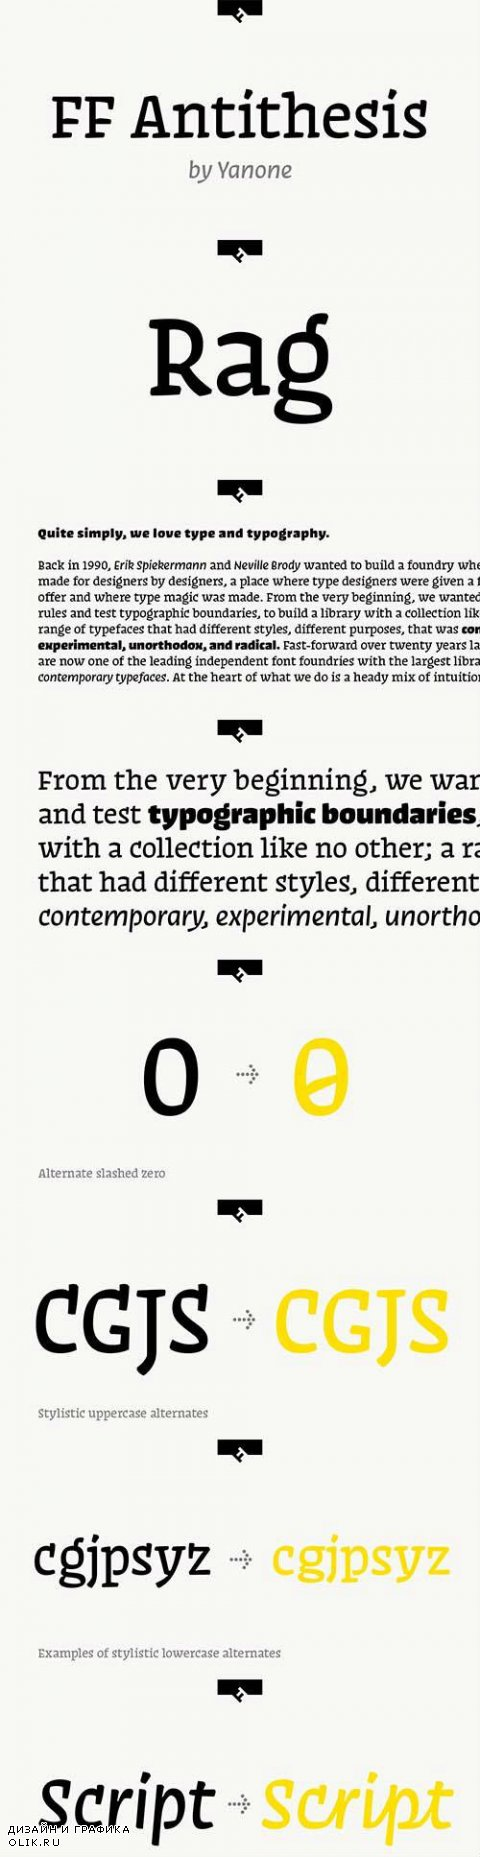 FF Antithesis Font Family